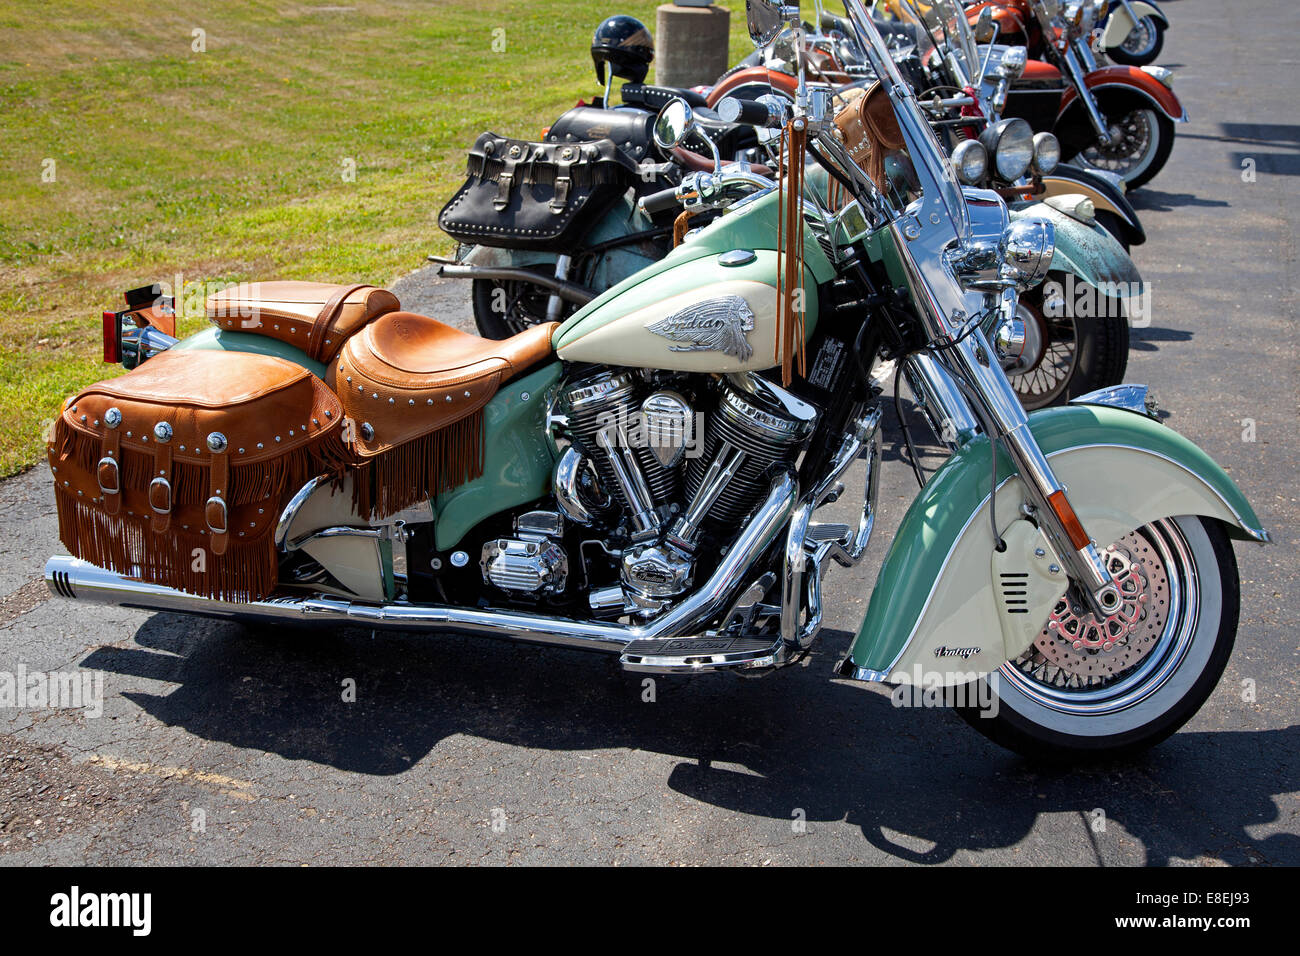 Indian Motorcycles Stock Photos Indian Motorcycles Stock Images